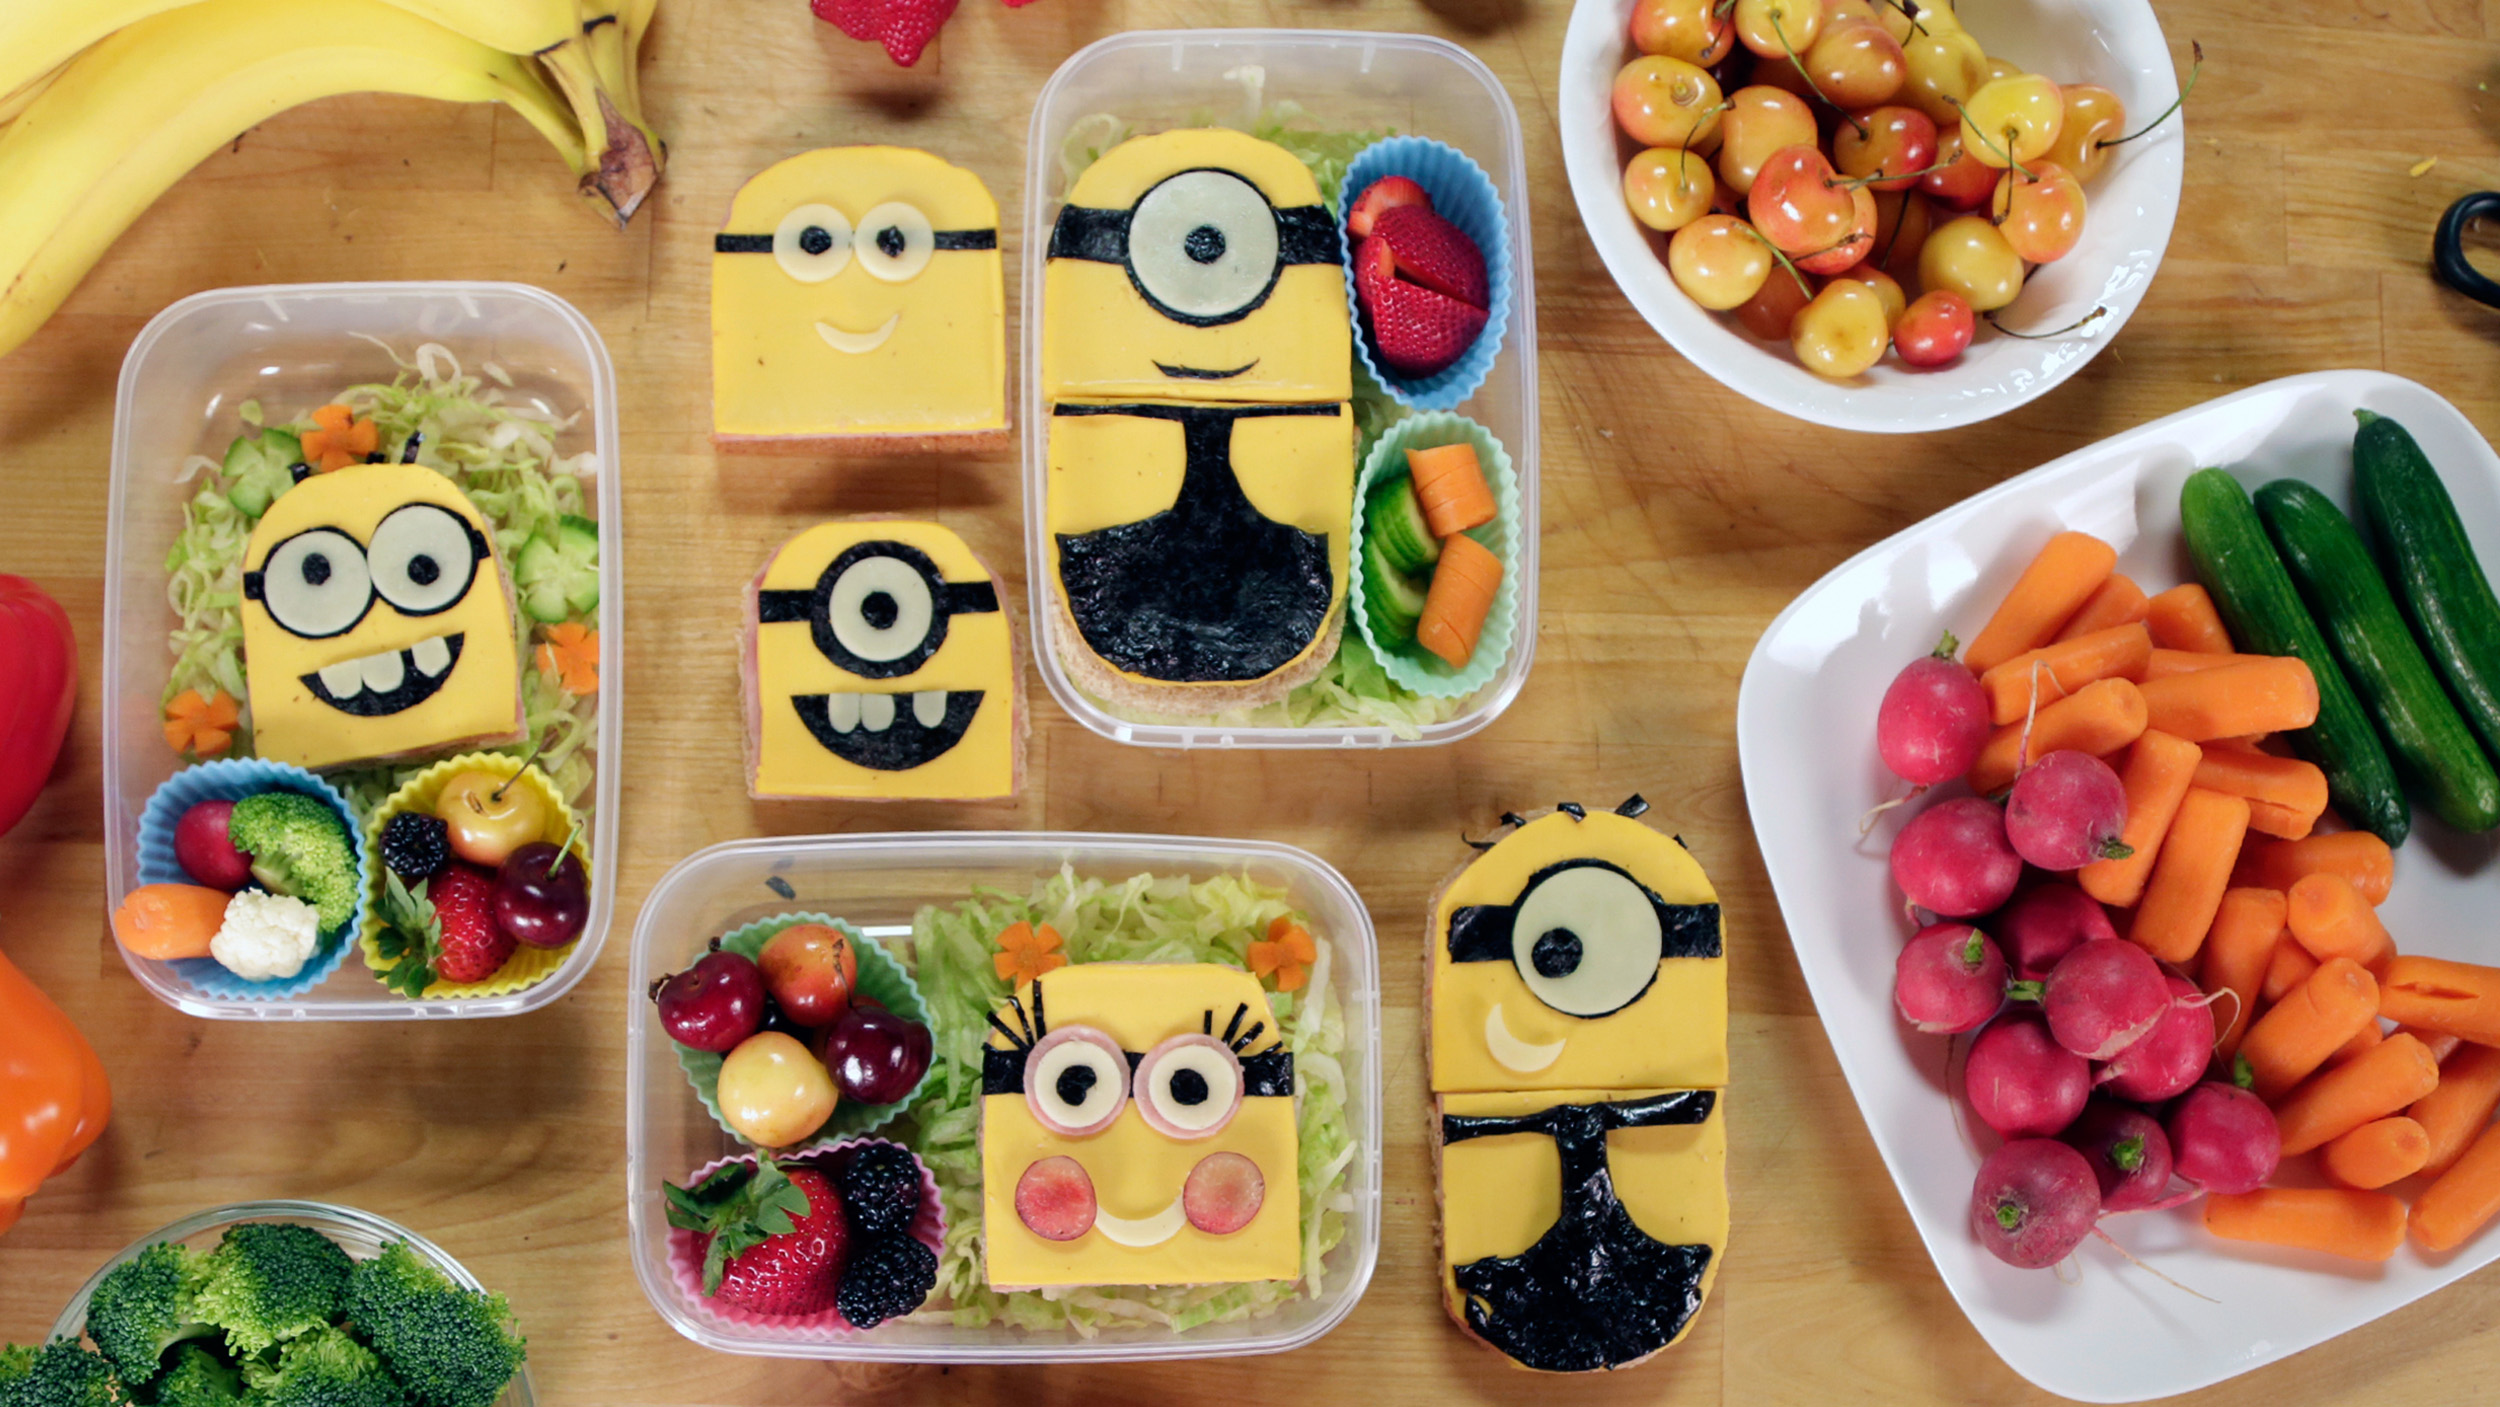 Yumbox Ideen Kindergarten Yumbox Lunch Ideas Kids Bento 91 Lunch Ideas For 2 Year Olds Tortellini Yumbox Lunch Recipe